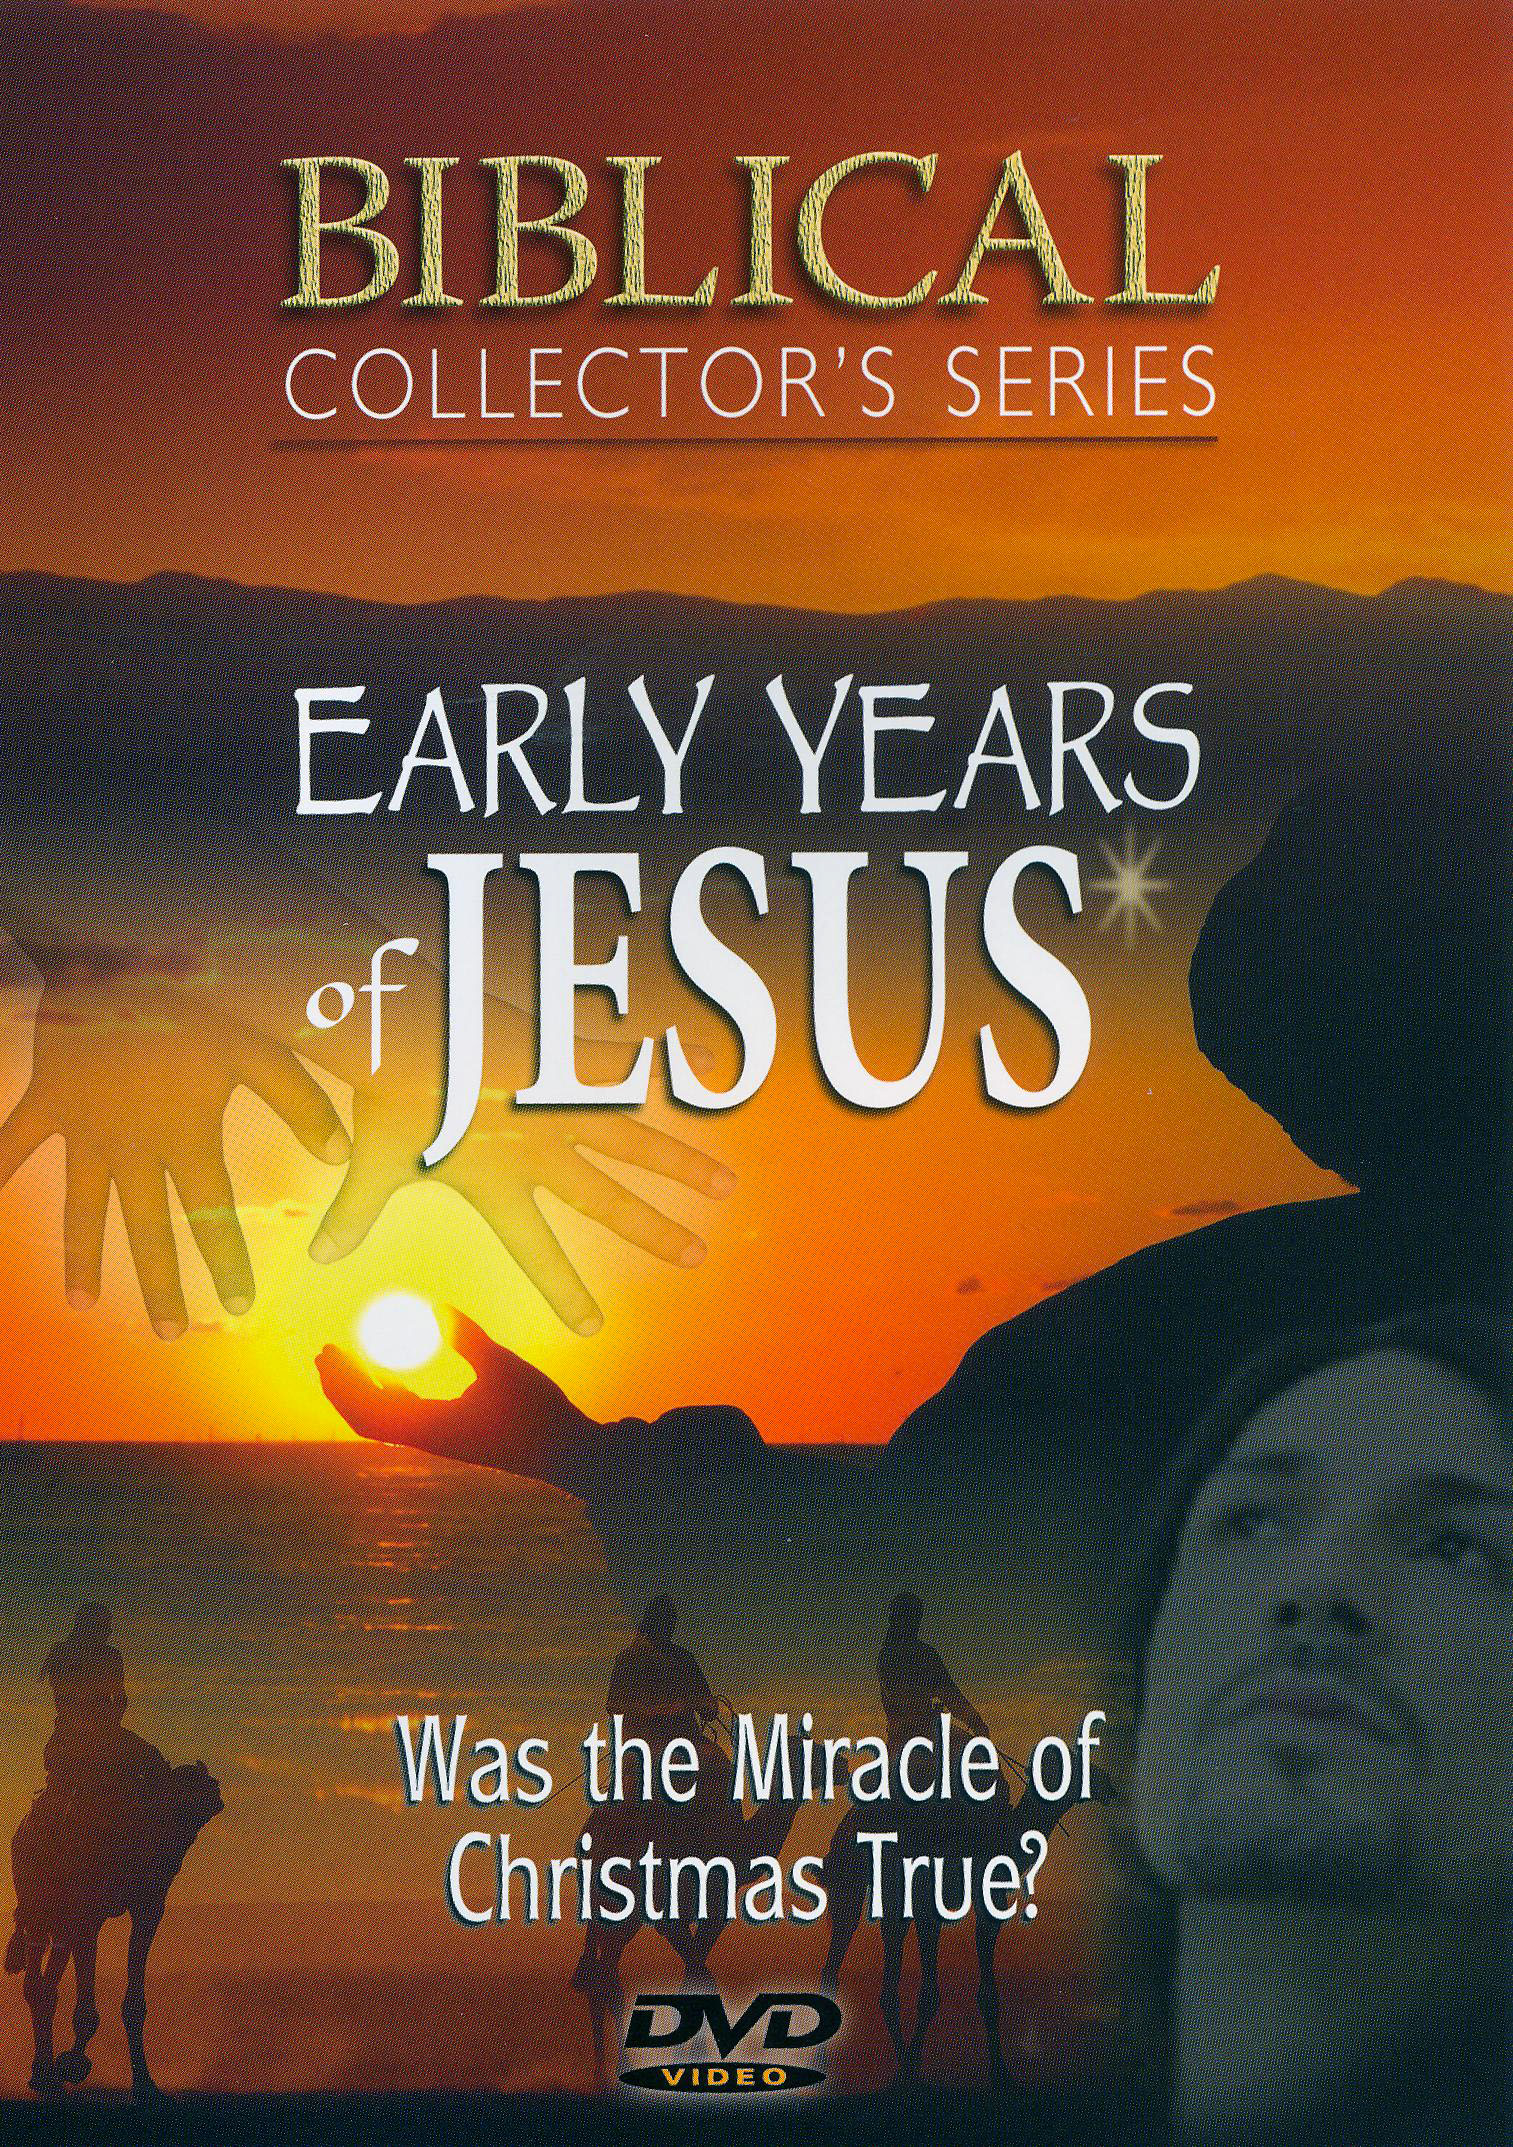 Biblical Collector's Series: Early Years of Jesus